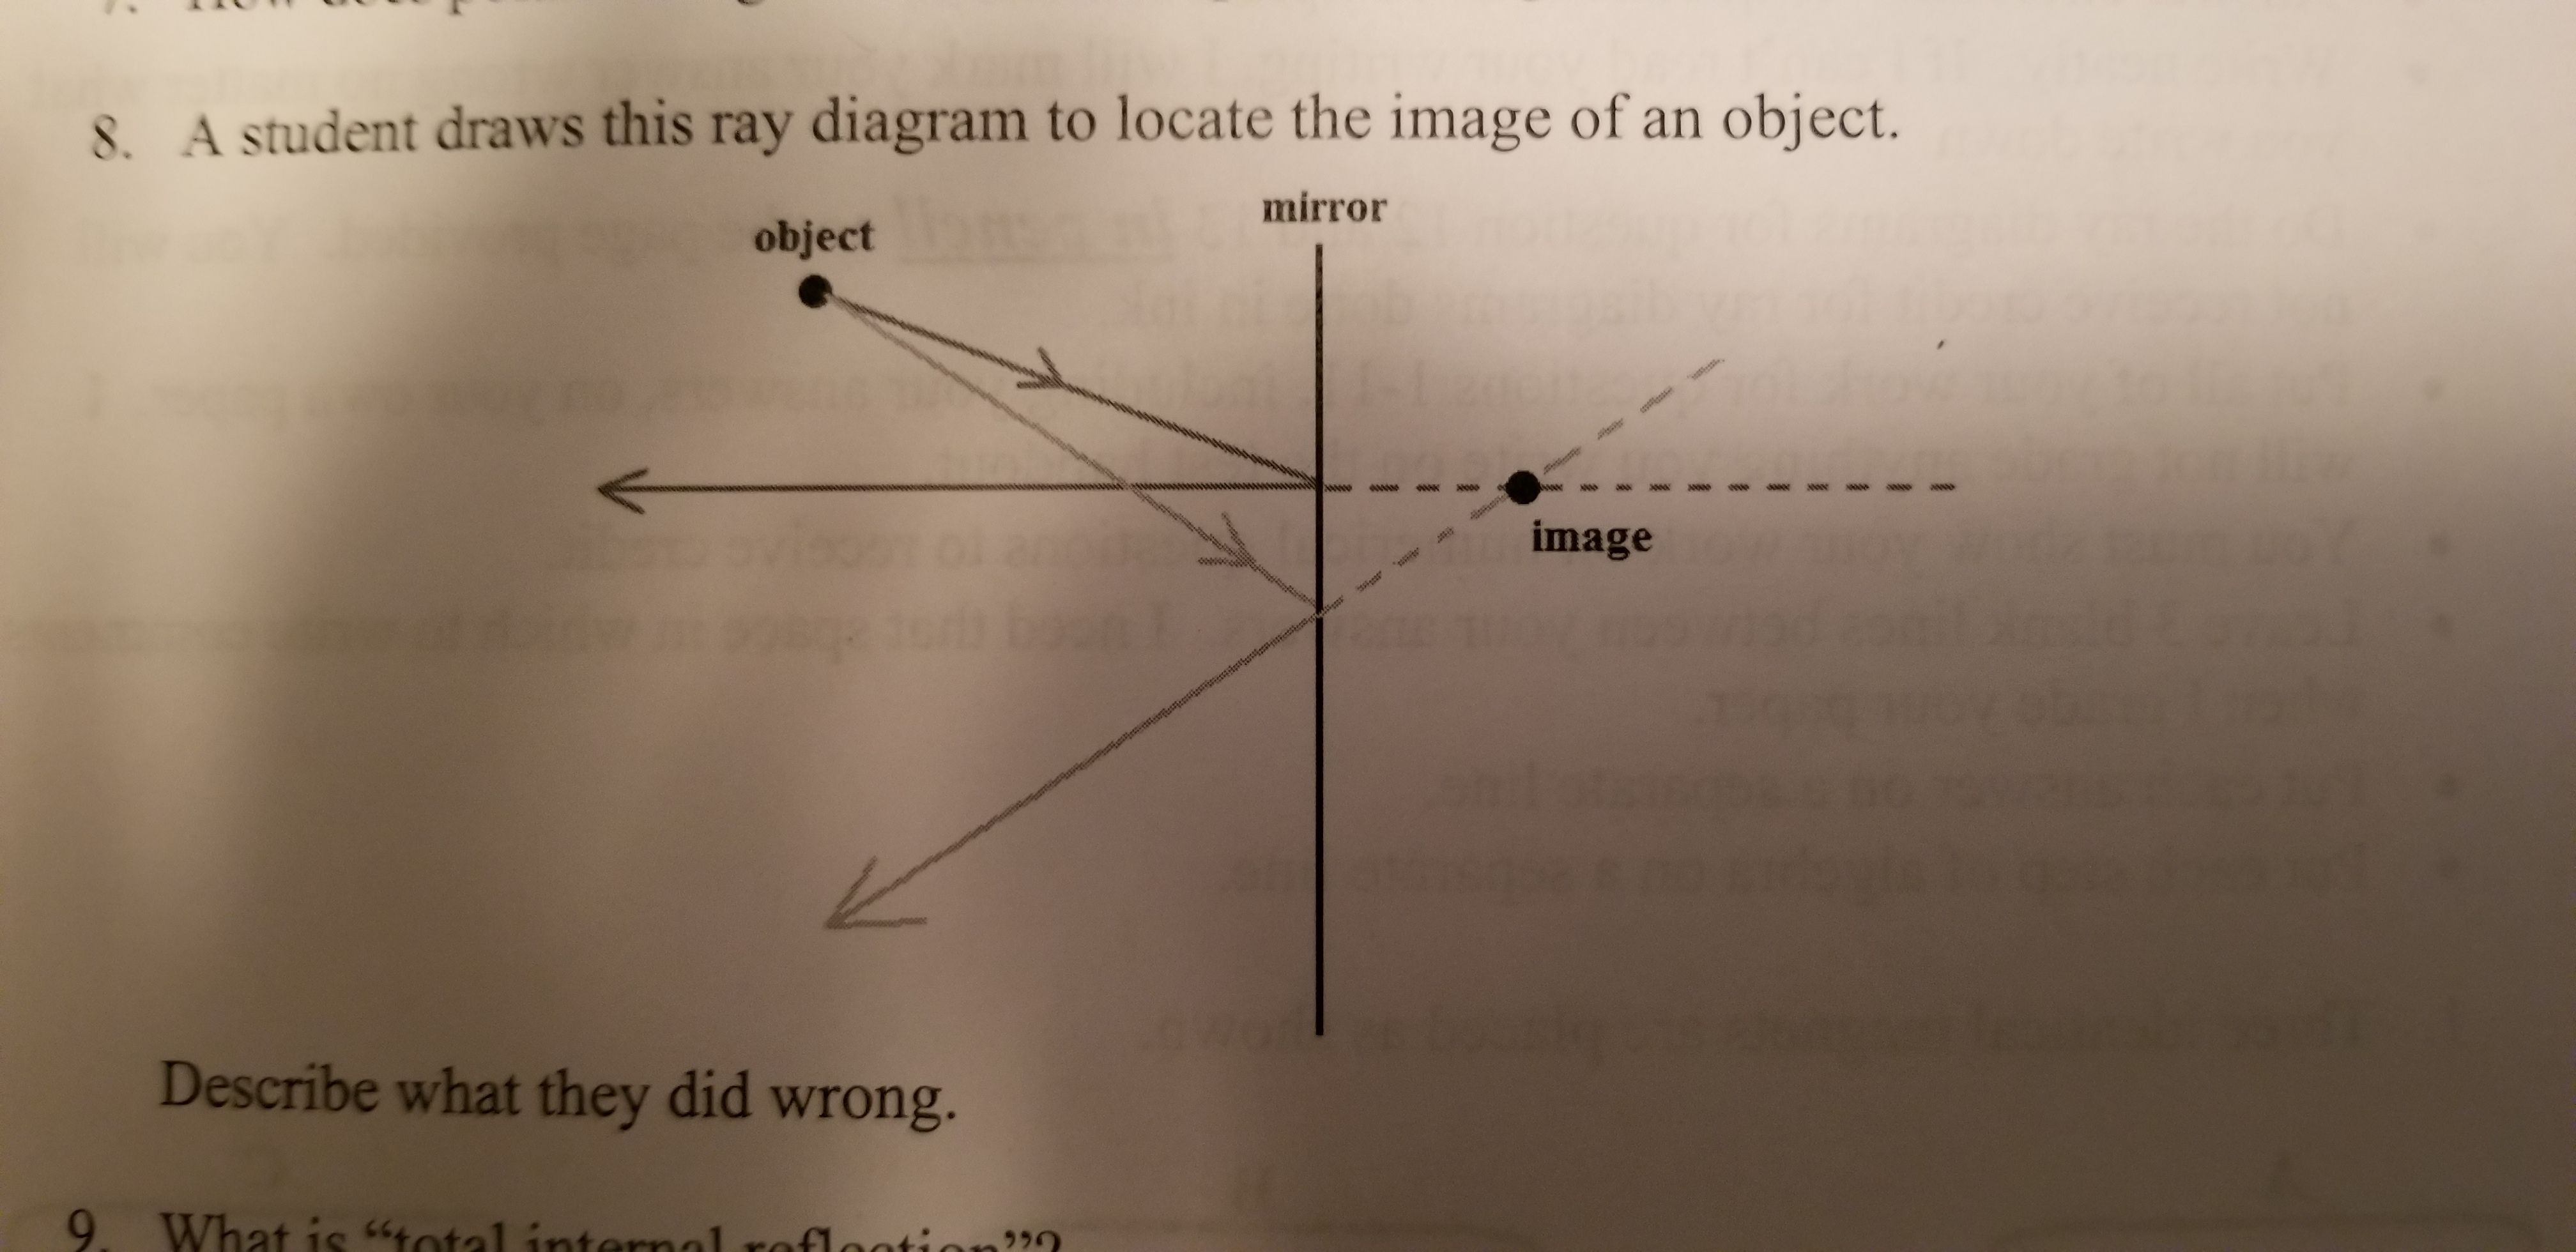 8. A student draws this ray diagram to locate the image of an object. mirror object image Describe what they did wrong. 9. What is